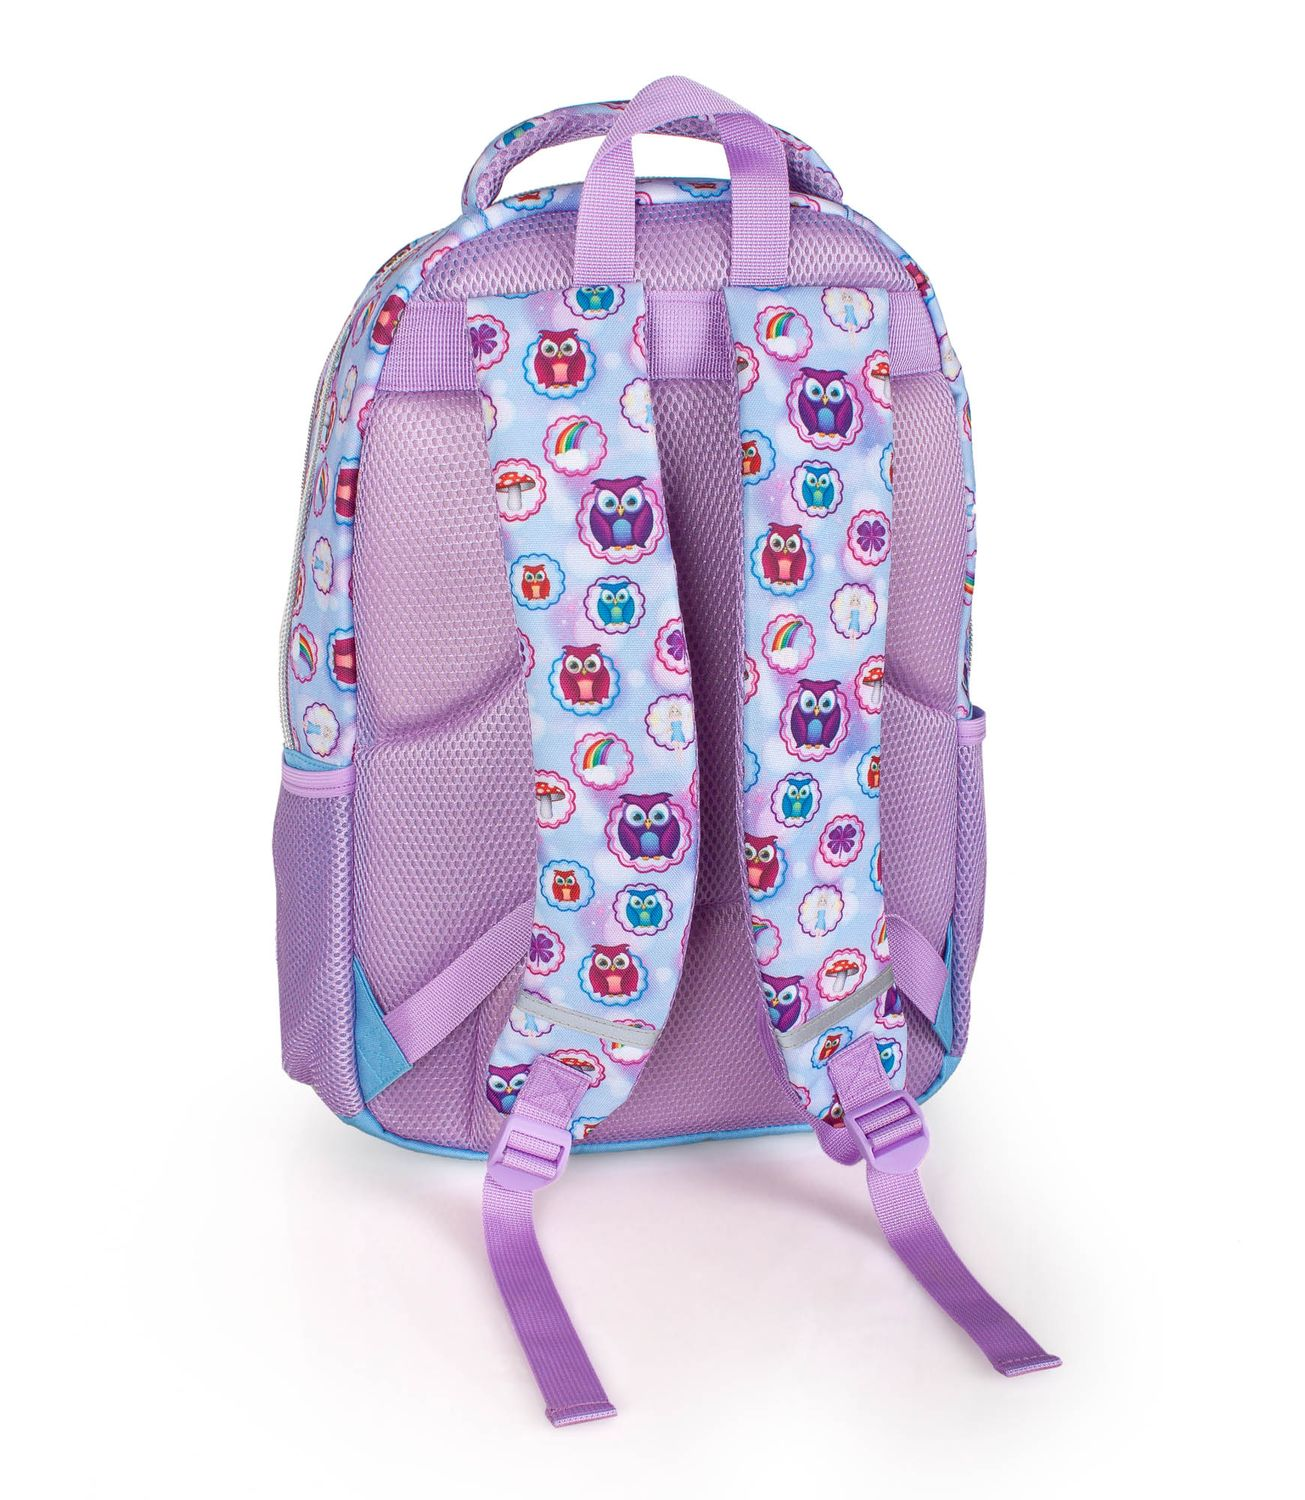 Triple Backpack Rucksack EMOJI Official PINK OWLS – image 2